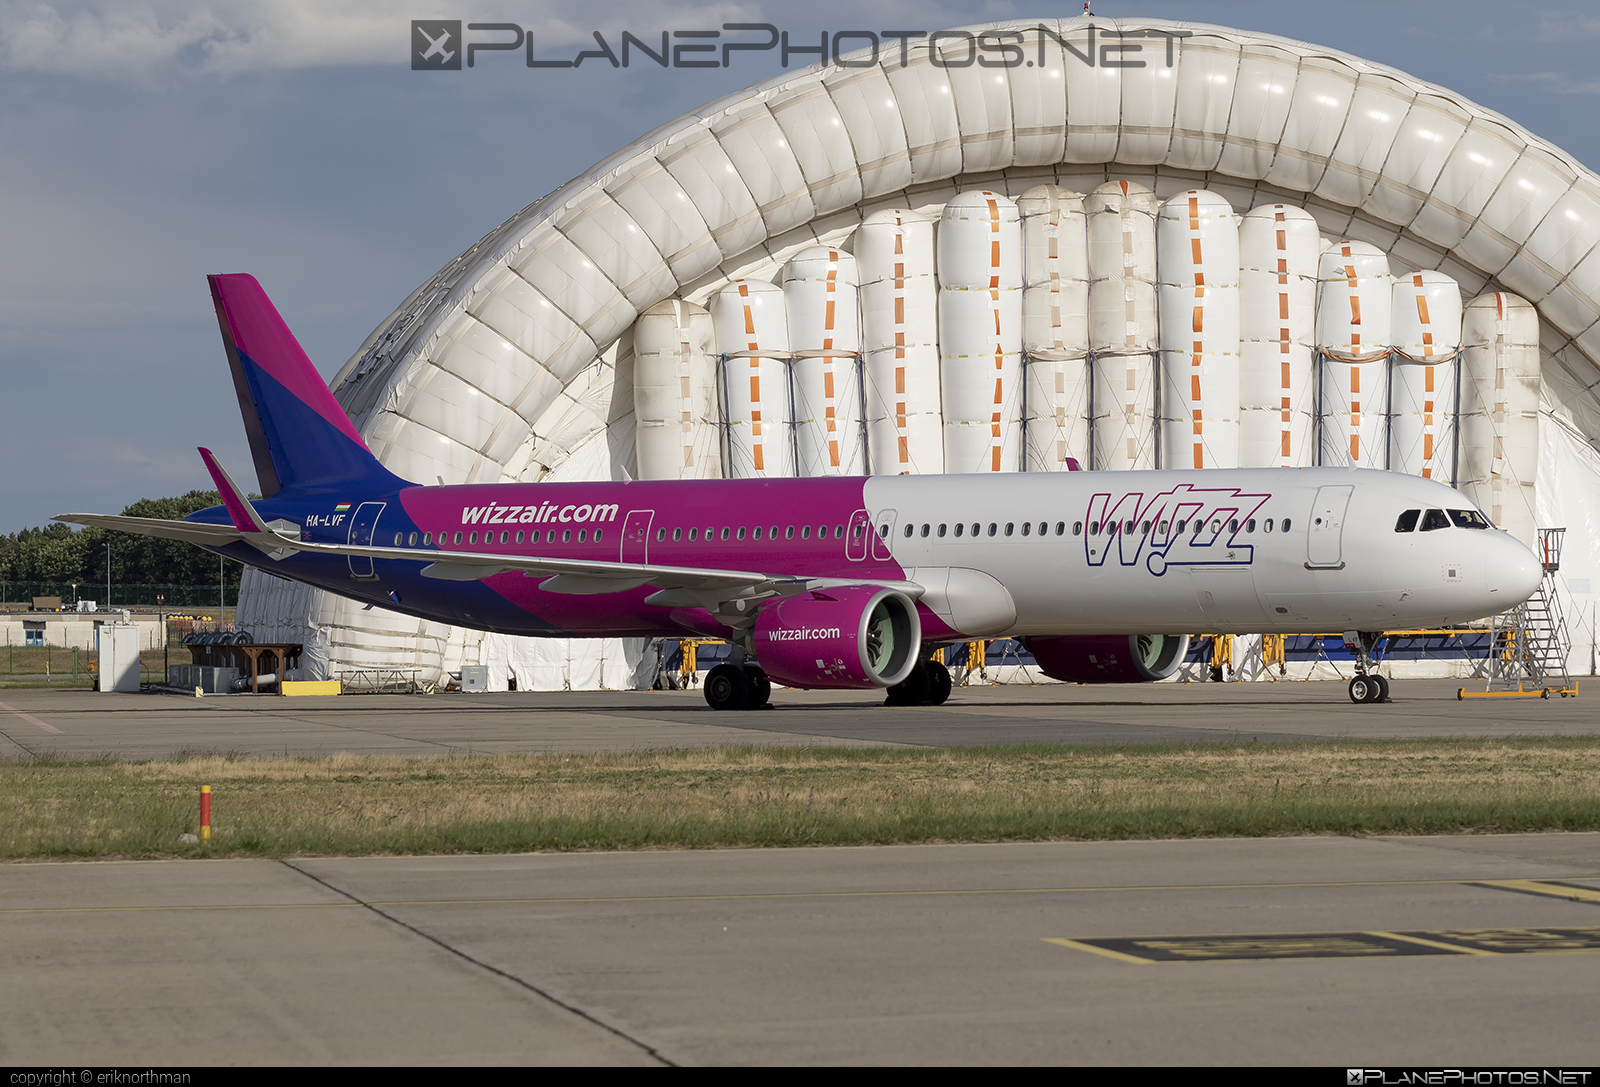 Airbus A321-271NX - HA-LVF operated by Wizz Air #a320family #a321 #a321neo #airbus #airbus321 #airbus321lr #wizz #wizzair